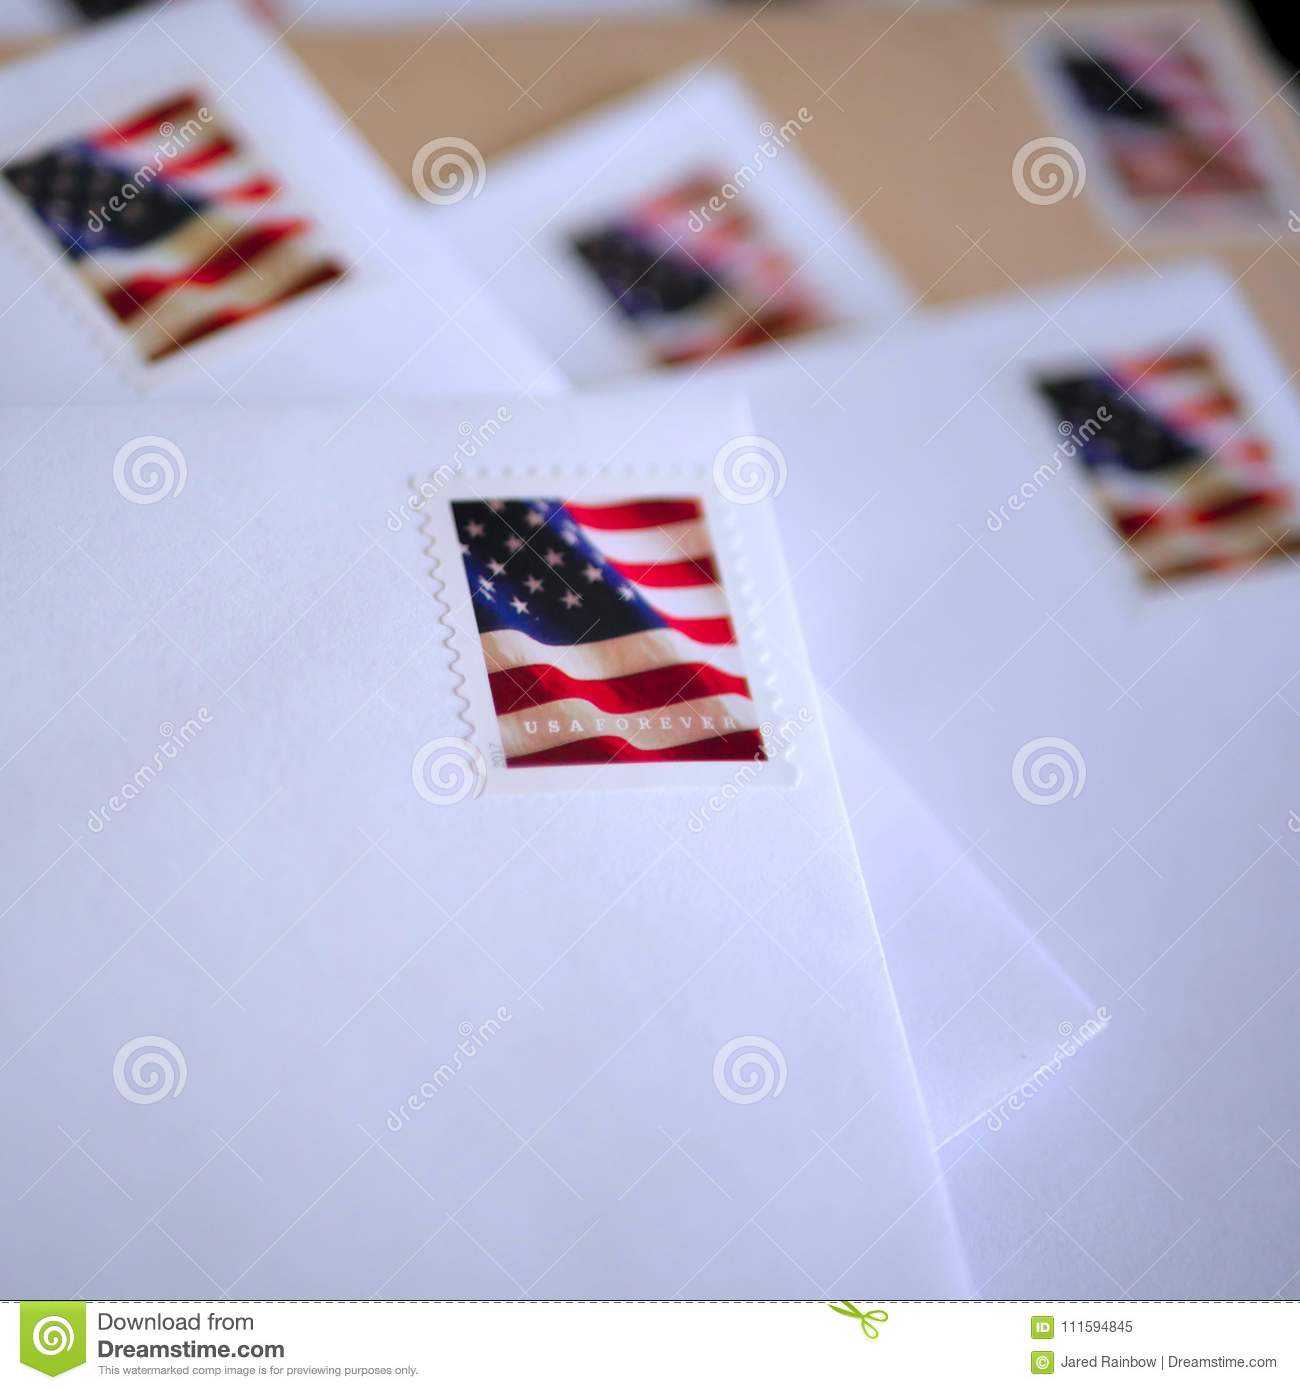 95ada6c80403 Blank envelopes and stationery with red white and blue american flag stamps.